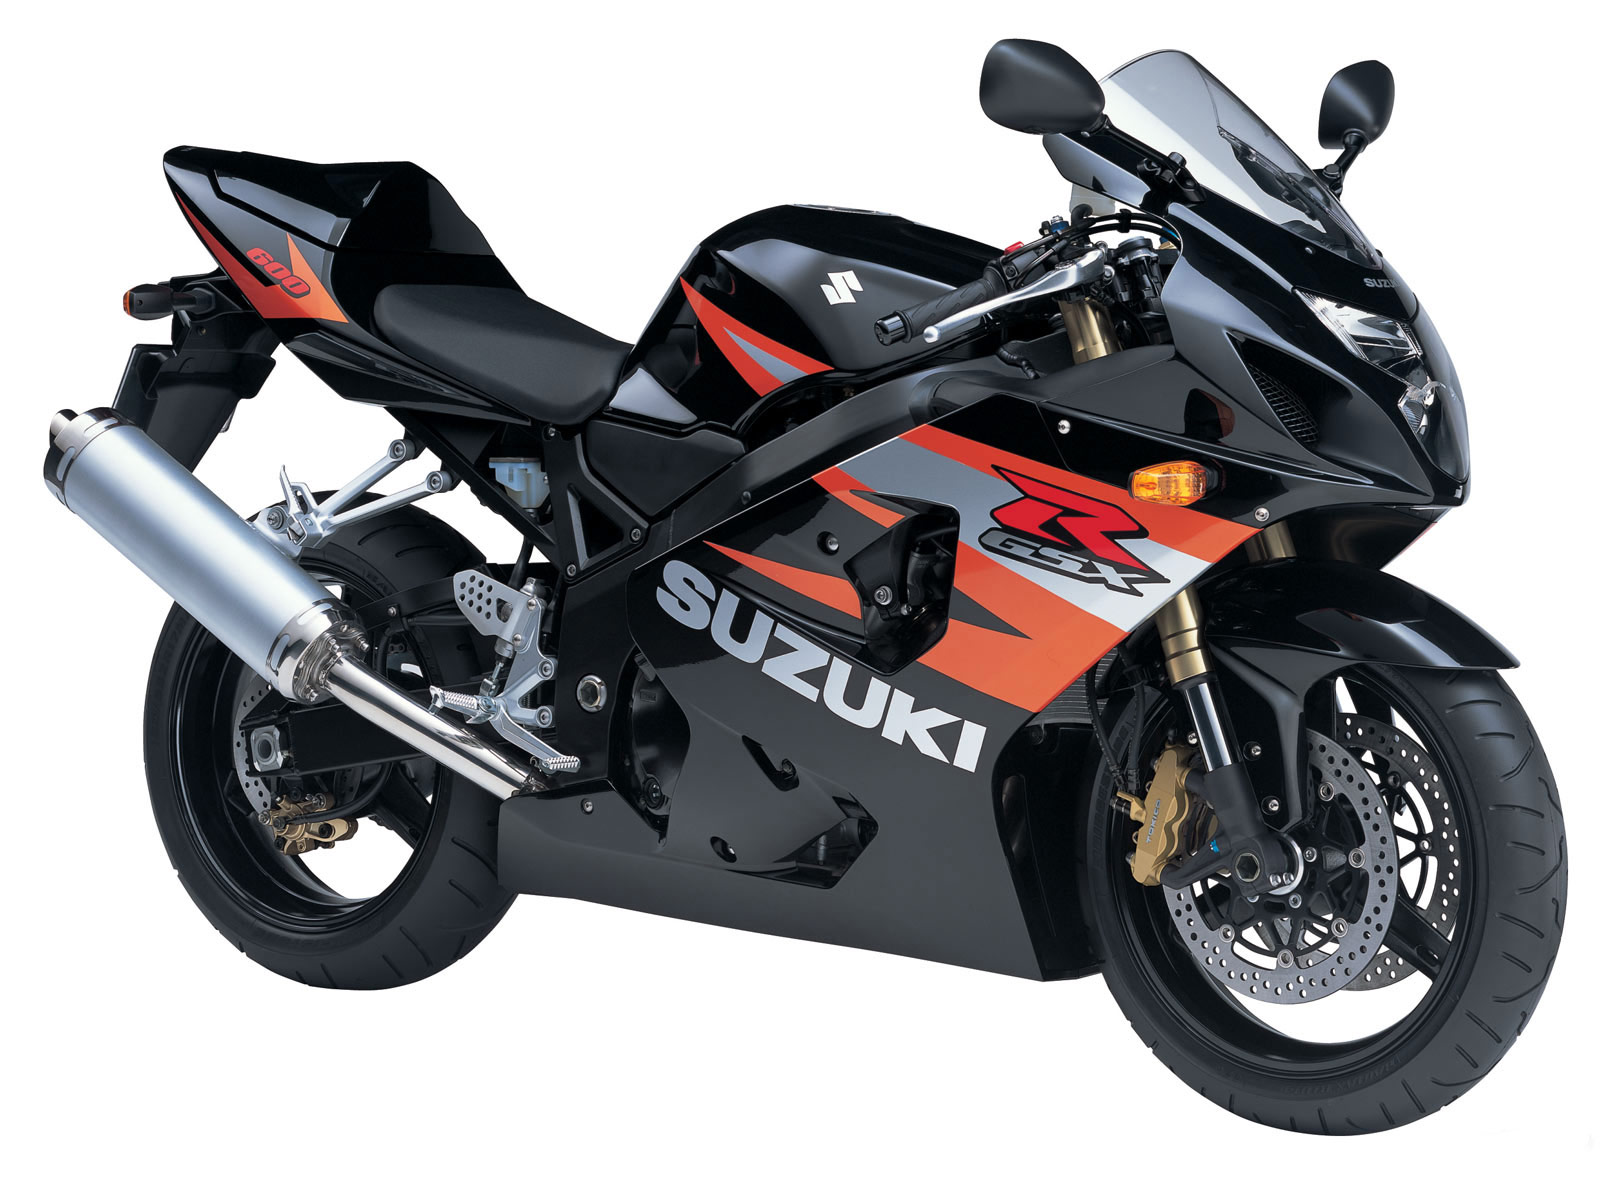 2004 suzuki gsx r 600 wallpaper accident lawyers info. Black Bedroom Furniture Sets. Home Design Ideas